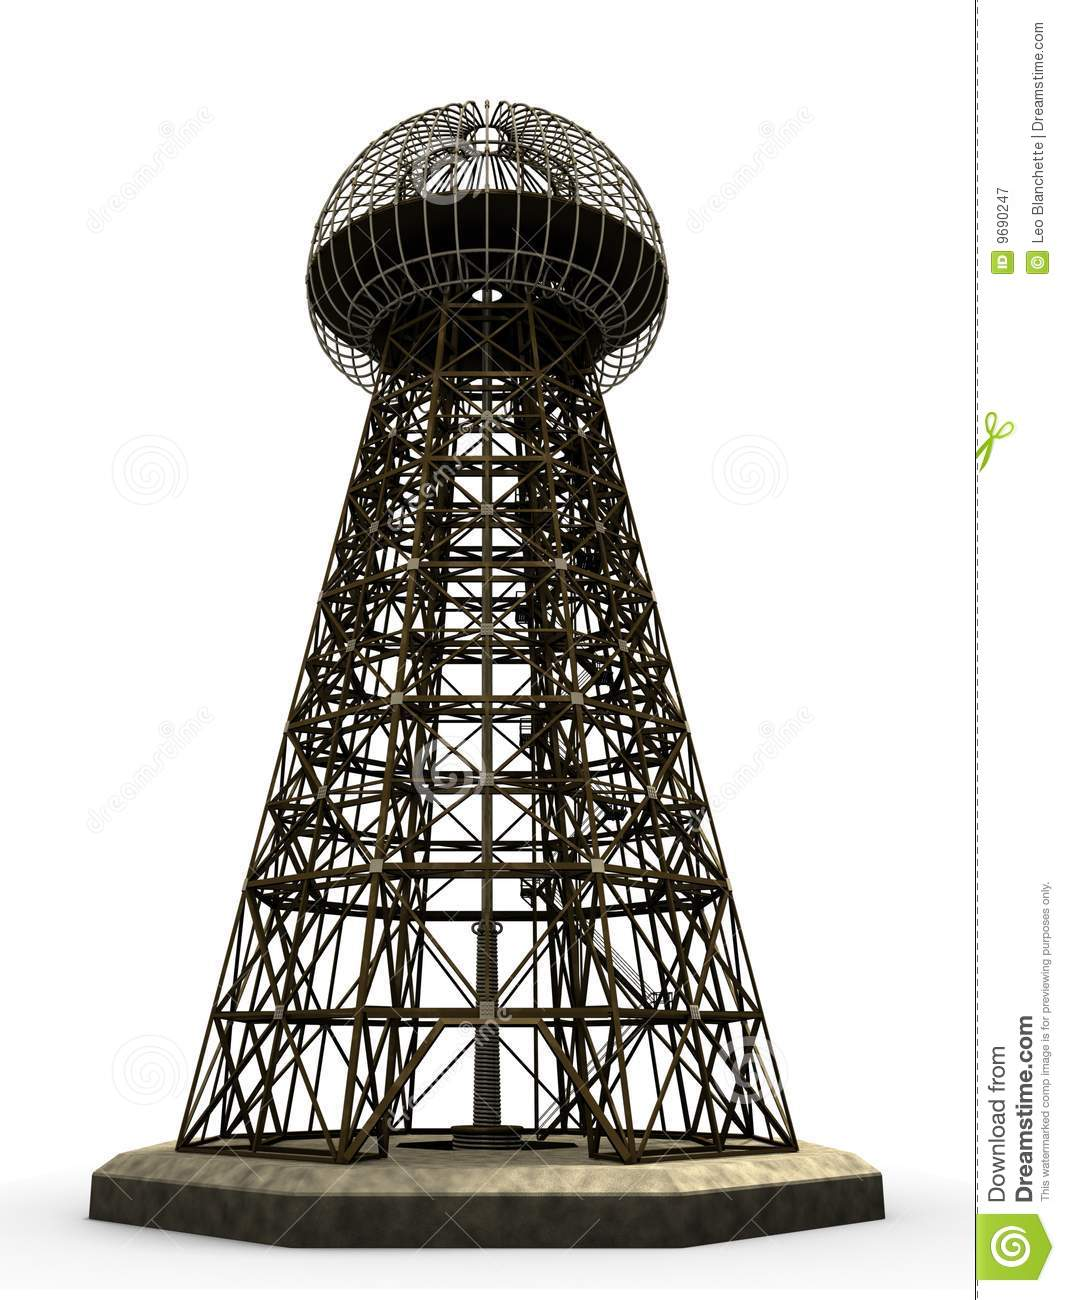 Magnifying Transmitter The Wardenclyffe Tower Royalty Free Stock Photography Image 9690247